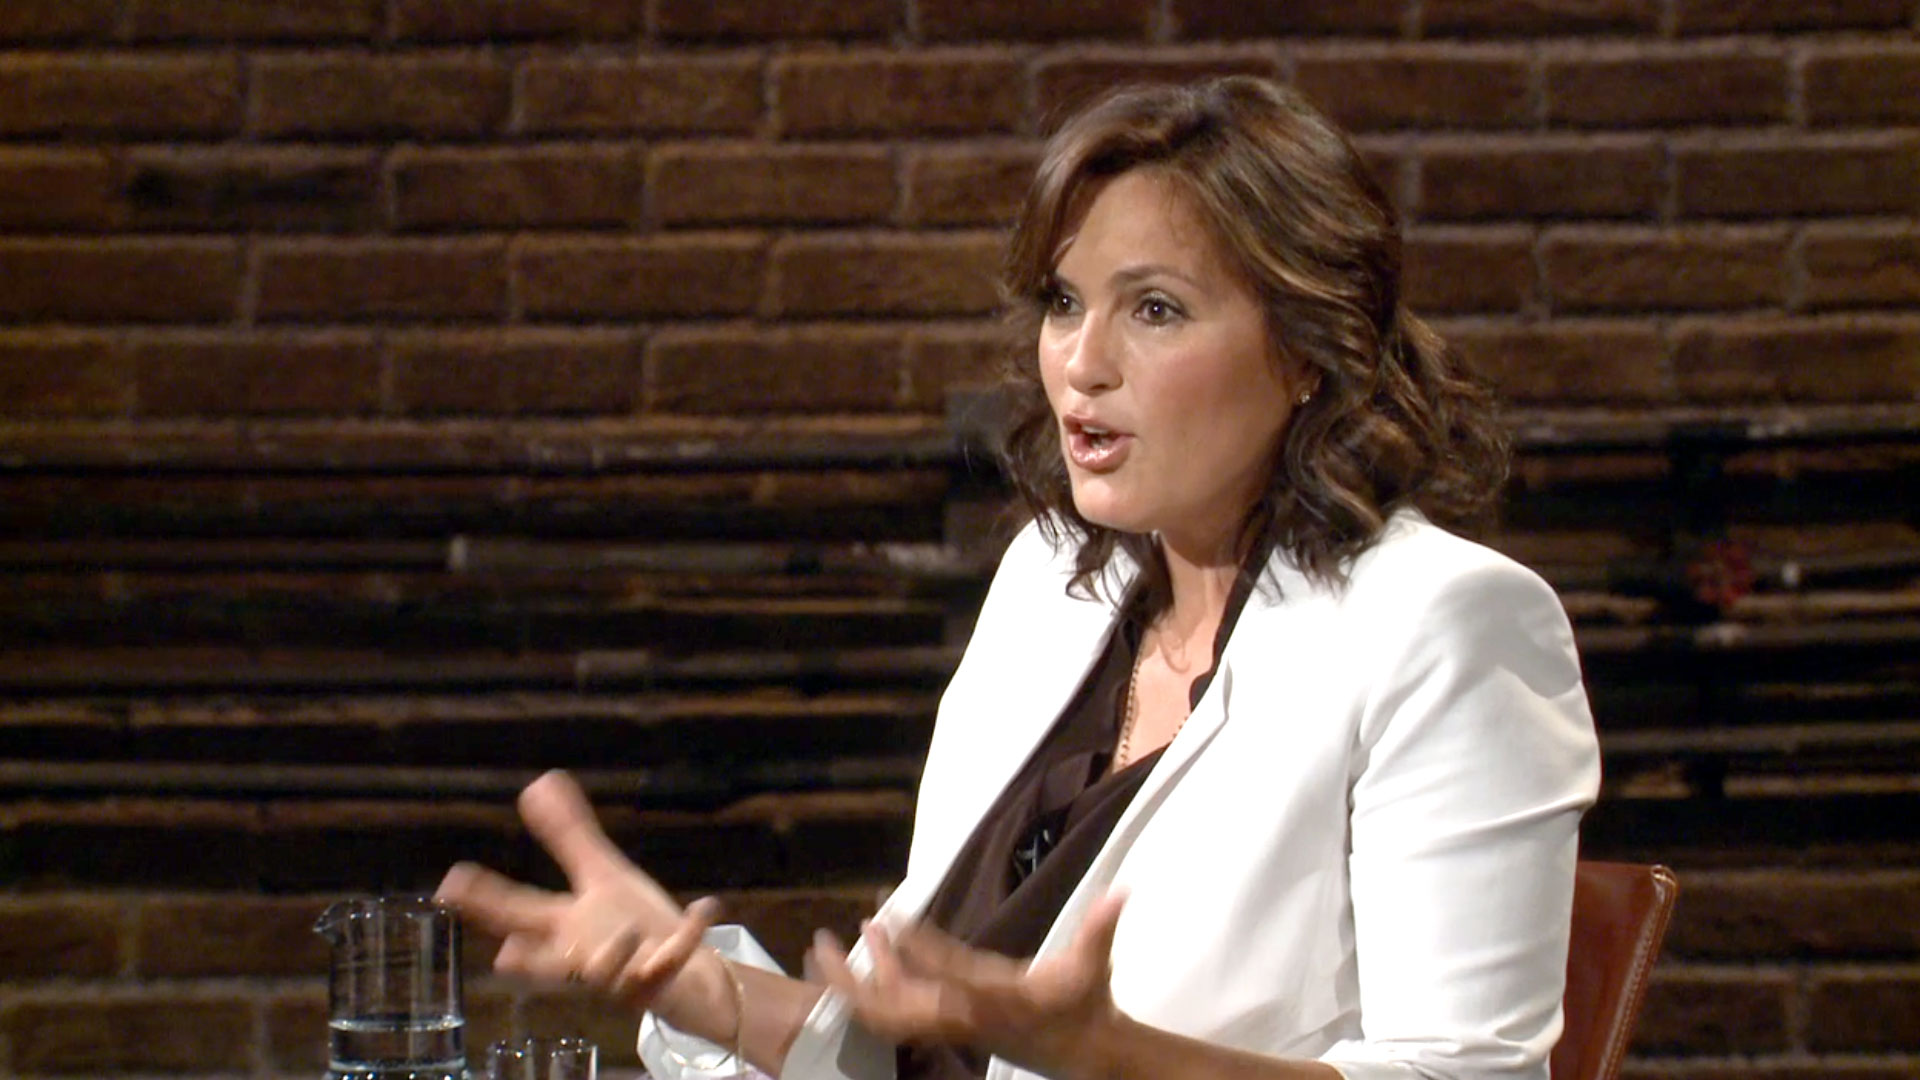 #KilledIt: Mariska on her Audition for 'ER'